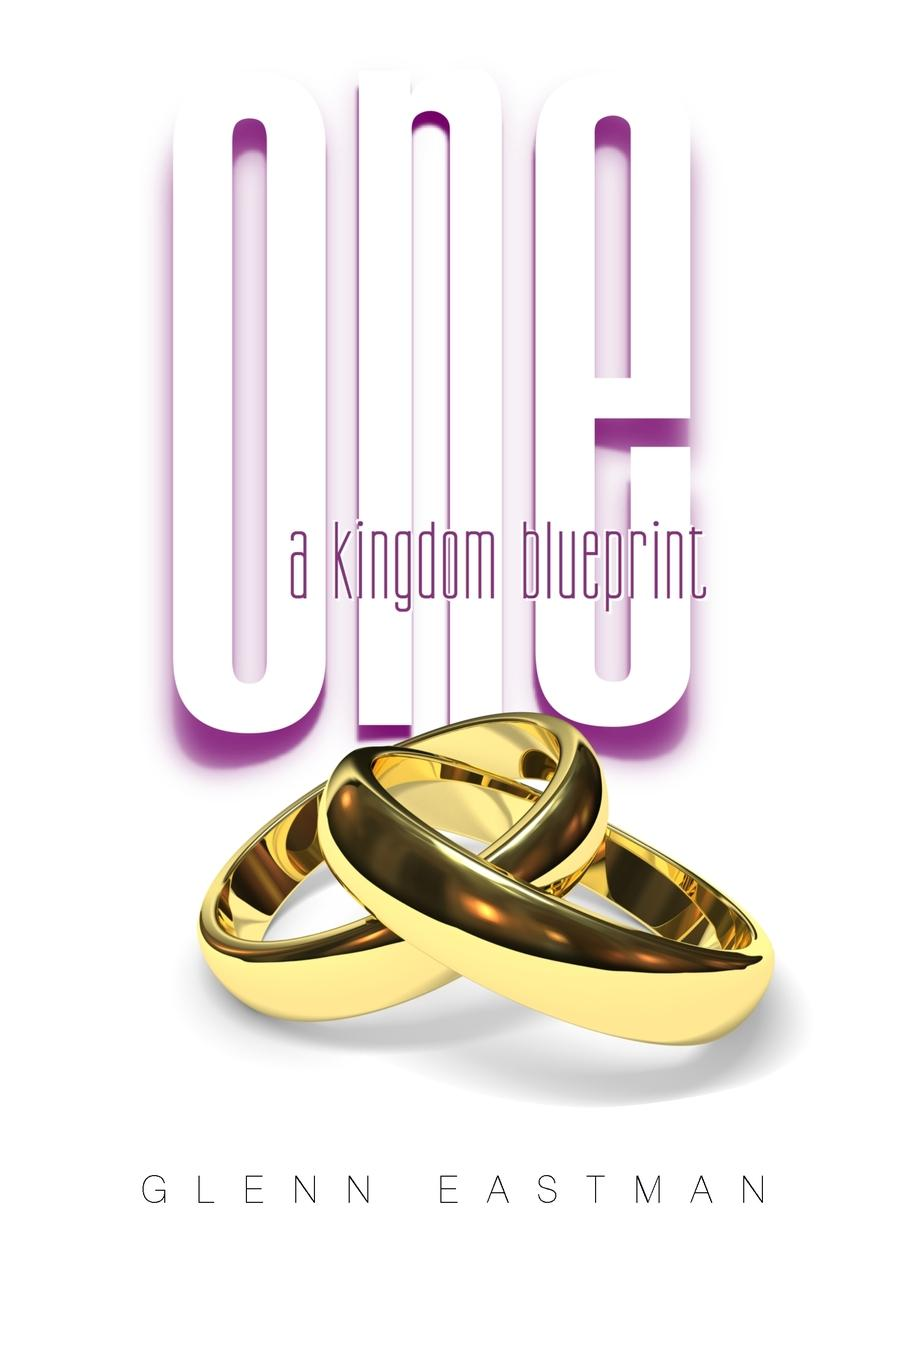 Glenn Eastman One. A Kingdom Blueprint gps to a joyful marriage